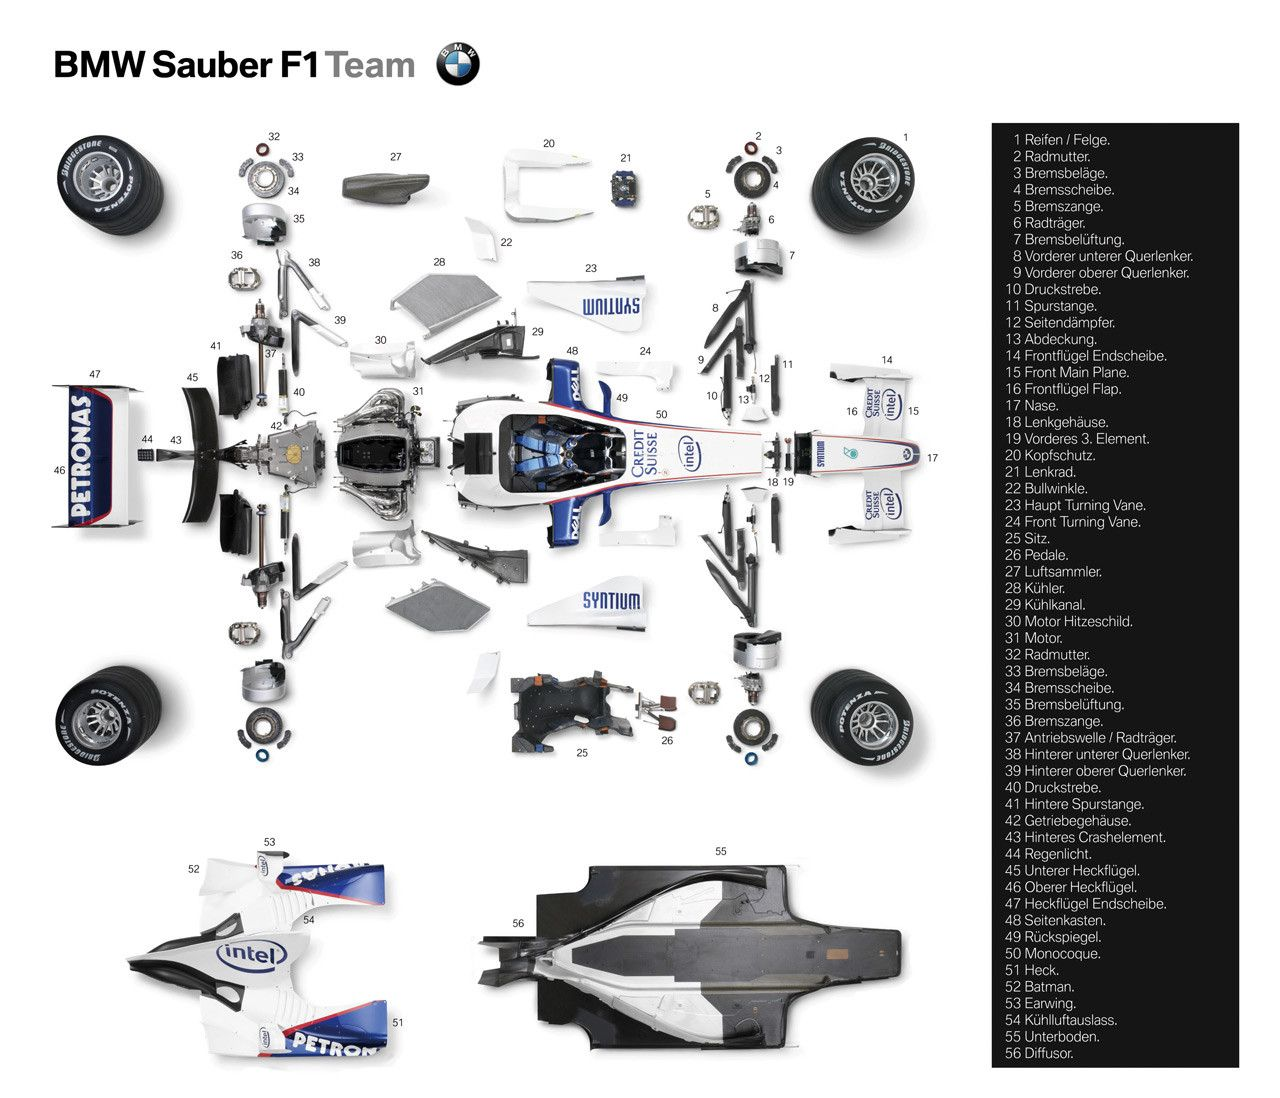 2007 bmw sauber f1  exploded view